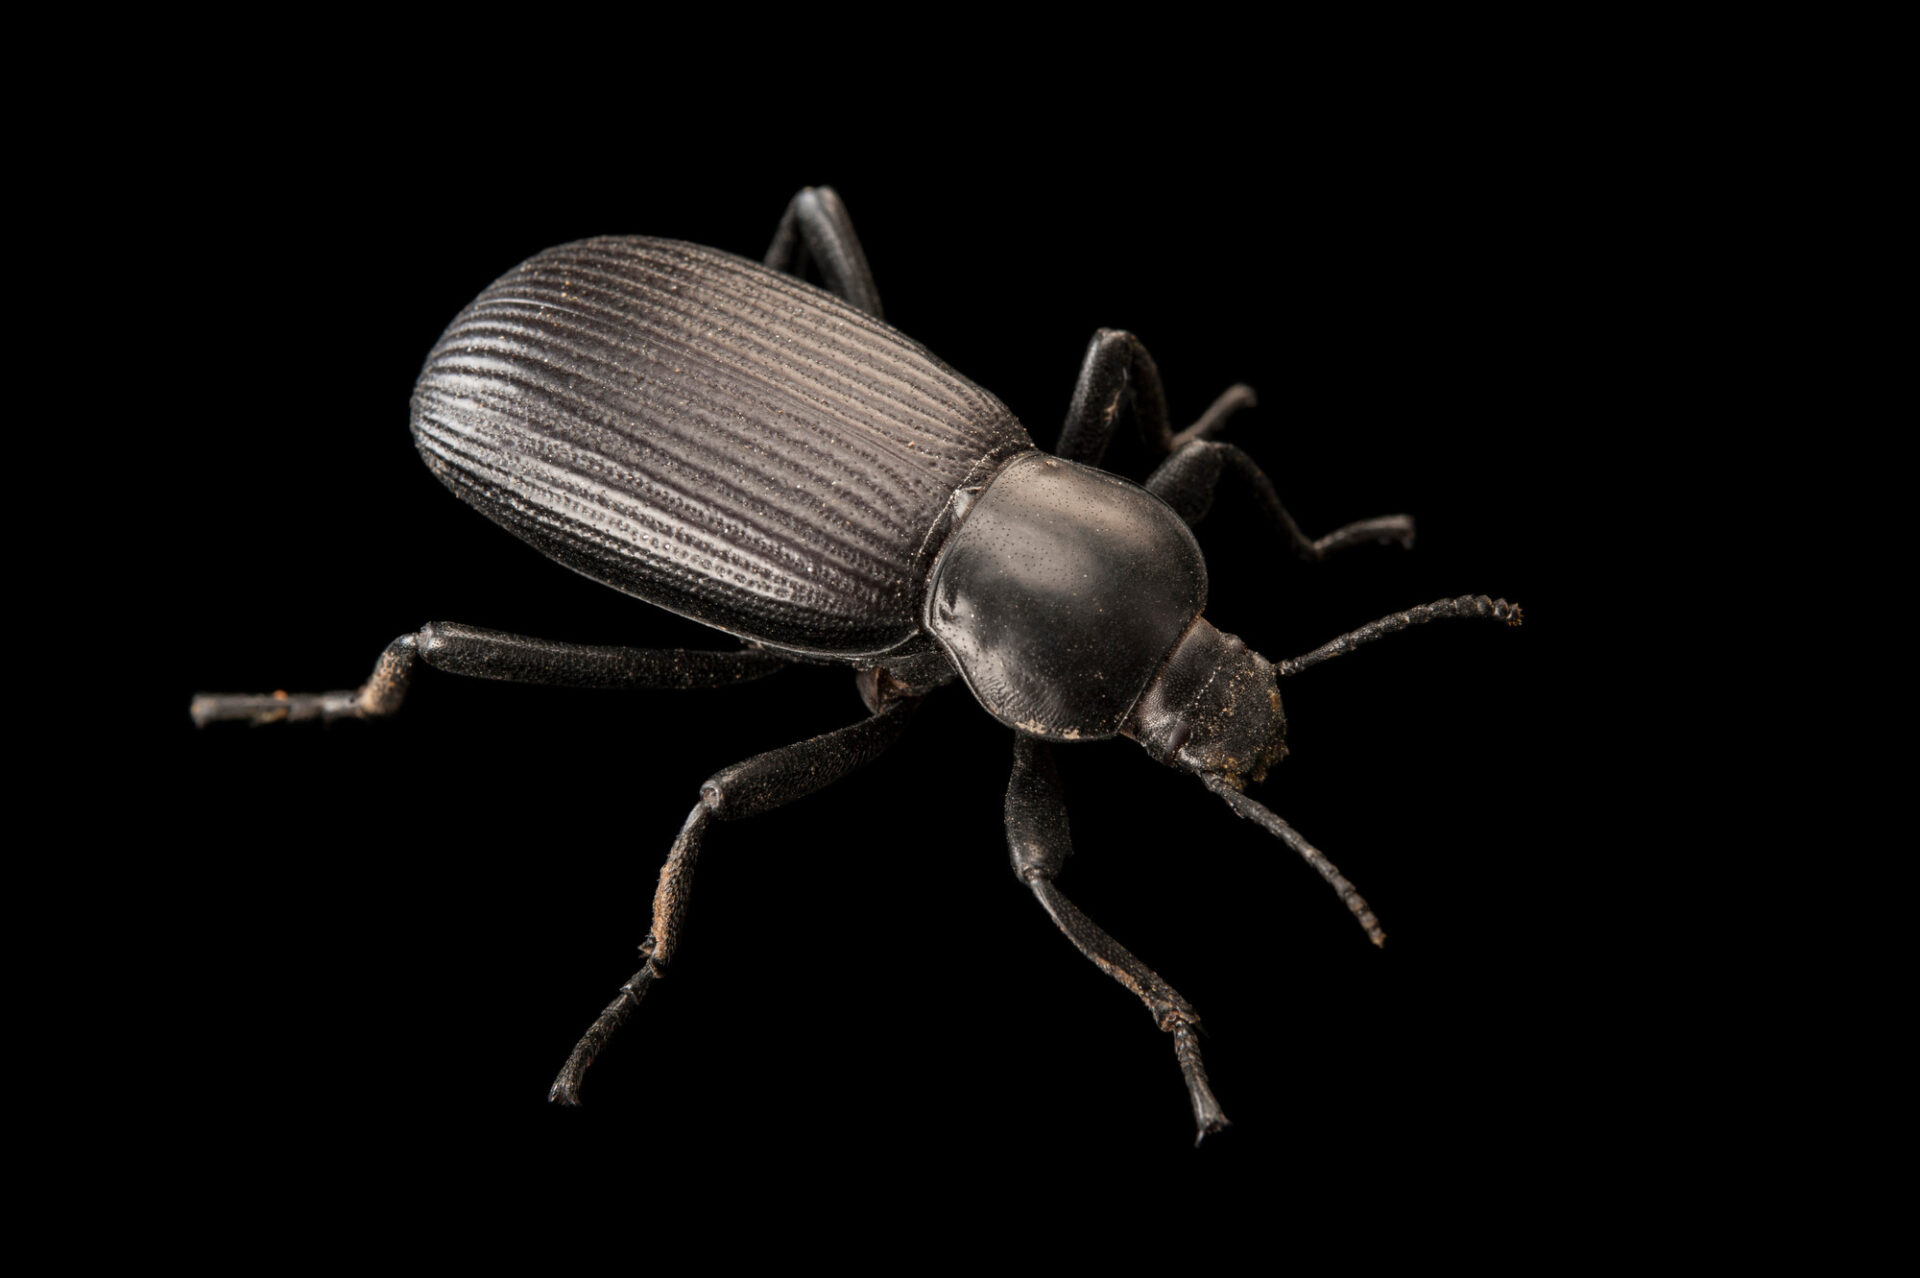 Photo: A darkling beetle (Eleodes sp.) at the Audubon Insectarium in New Orleans.